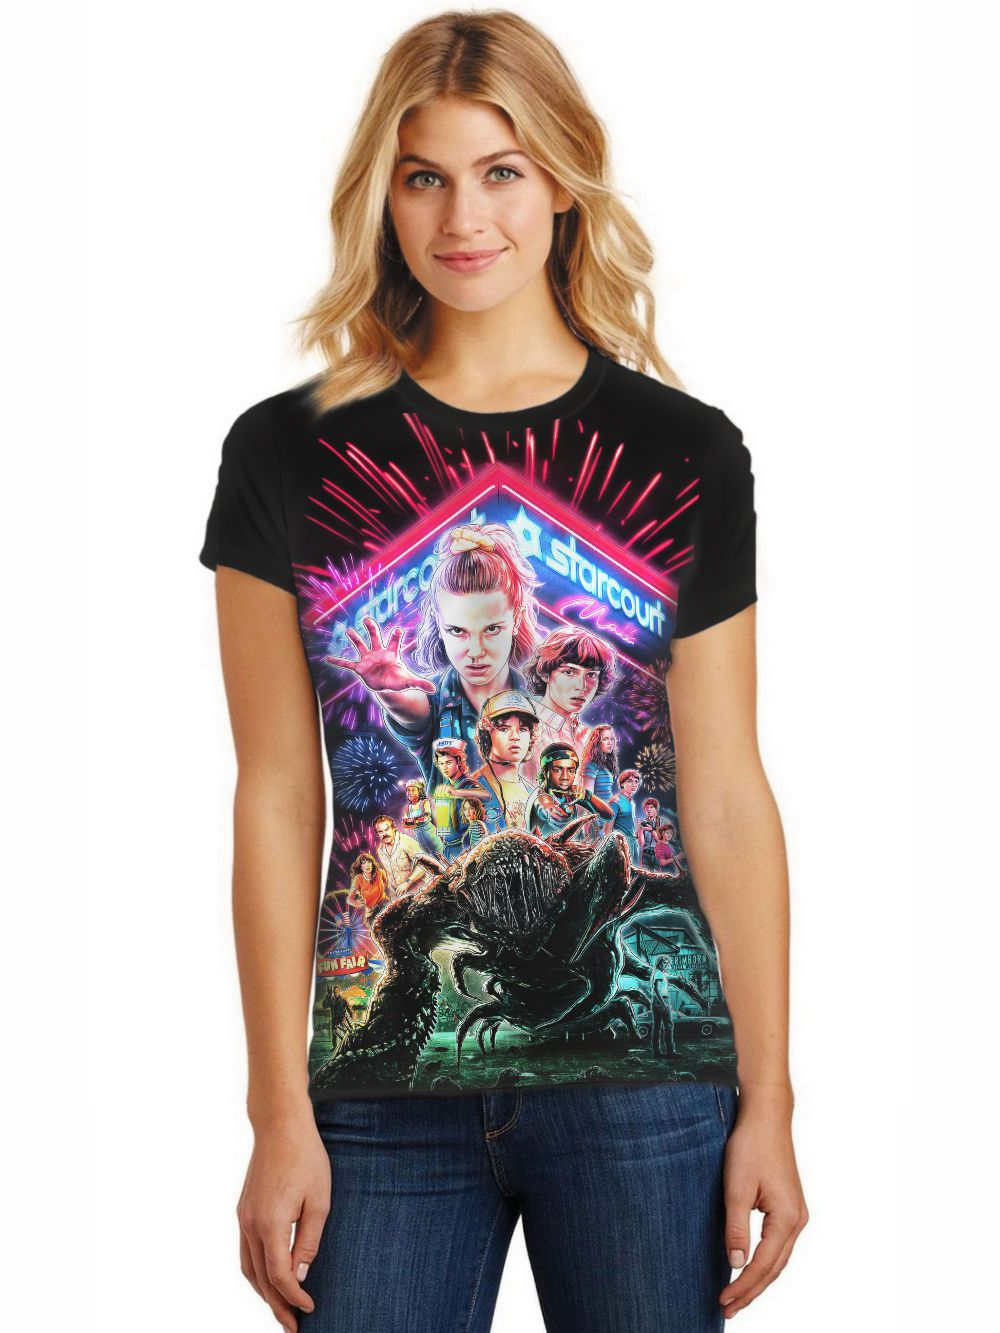 Camiseta Feminina T-Shirt Full Printed Série Stranger Things Baby Look FP_005